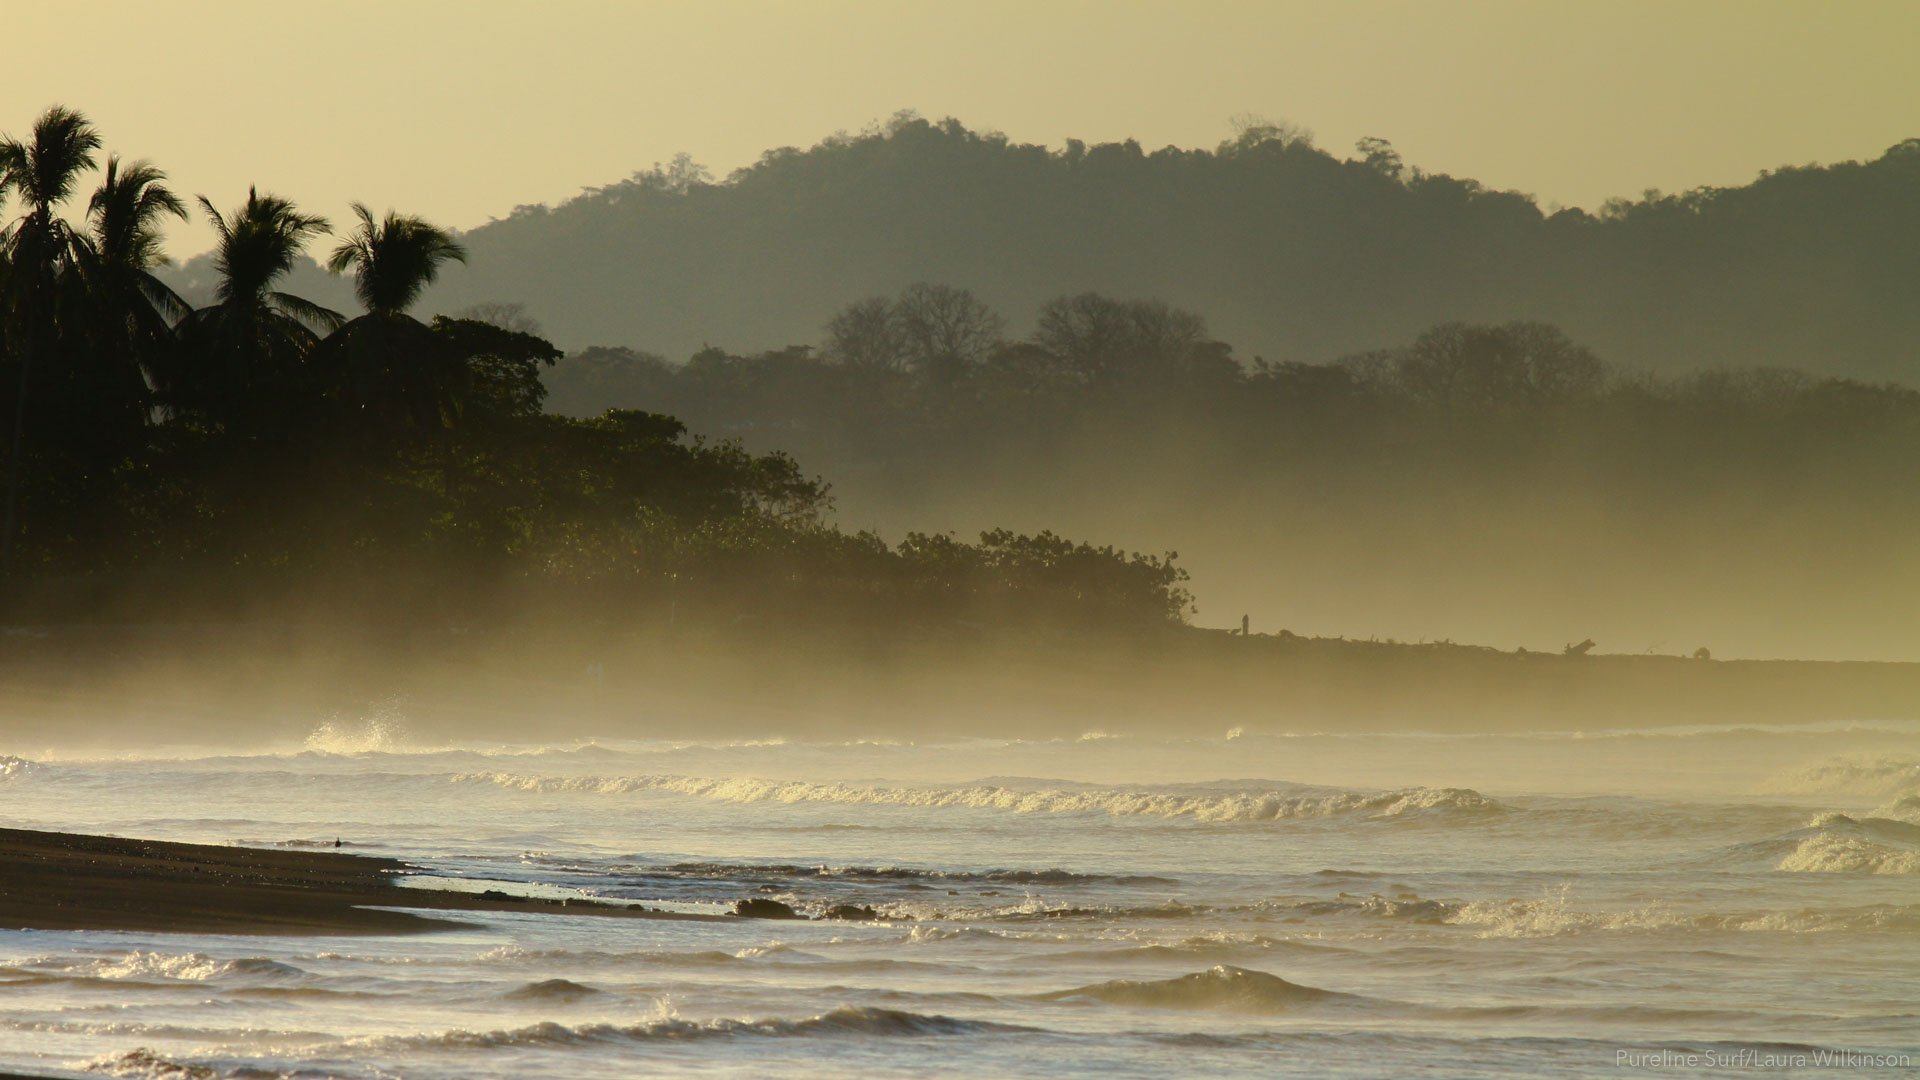 Misty view of the hills of Costa Rica with the ocean in the foreground, Ostional Beach, a Pureline Surf coaching location.